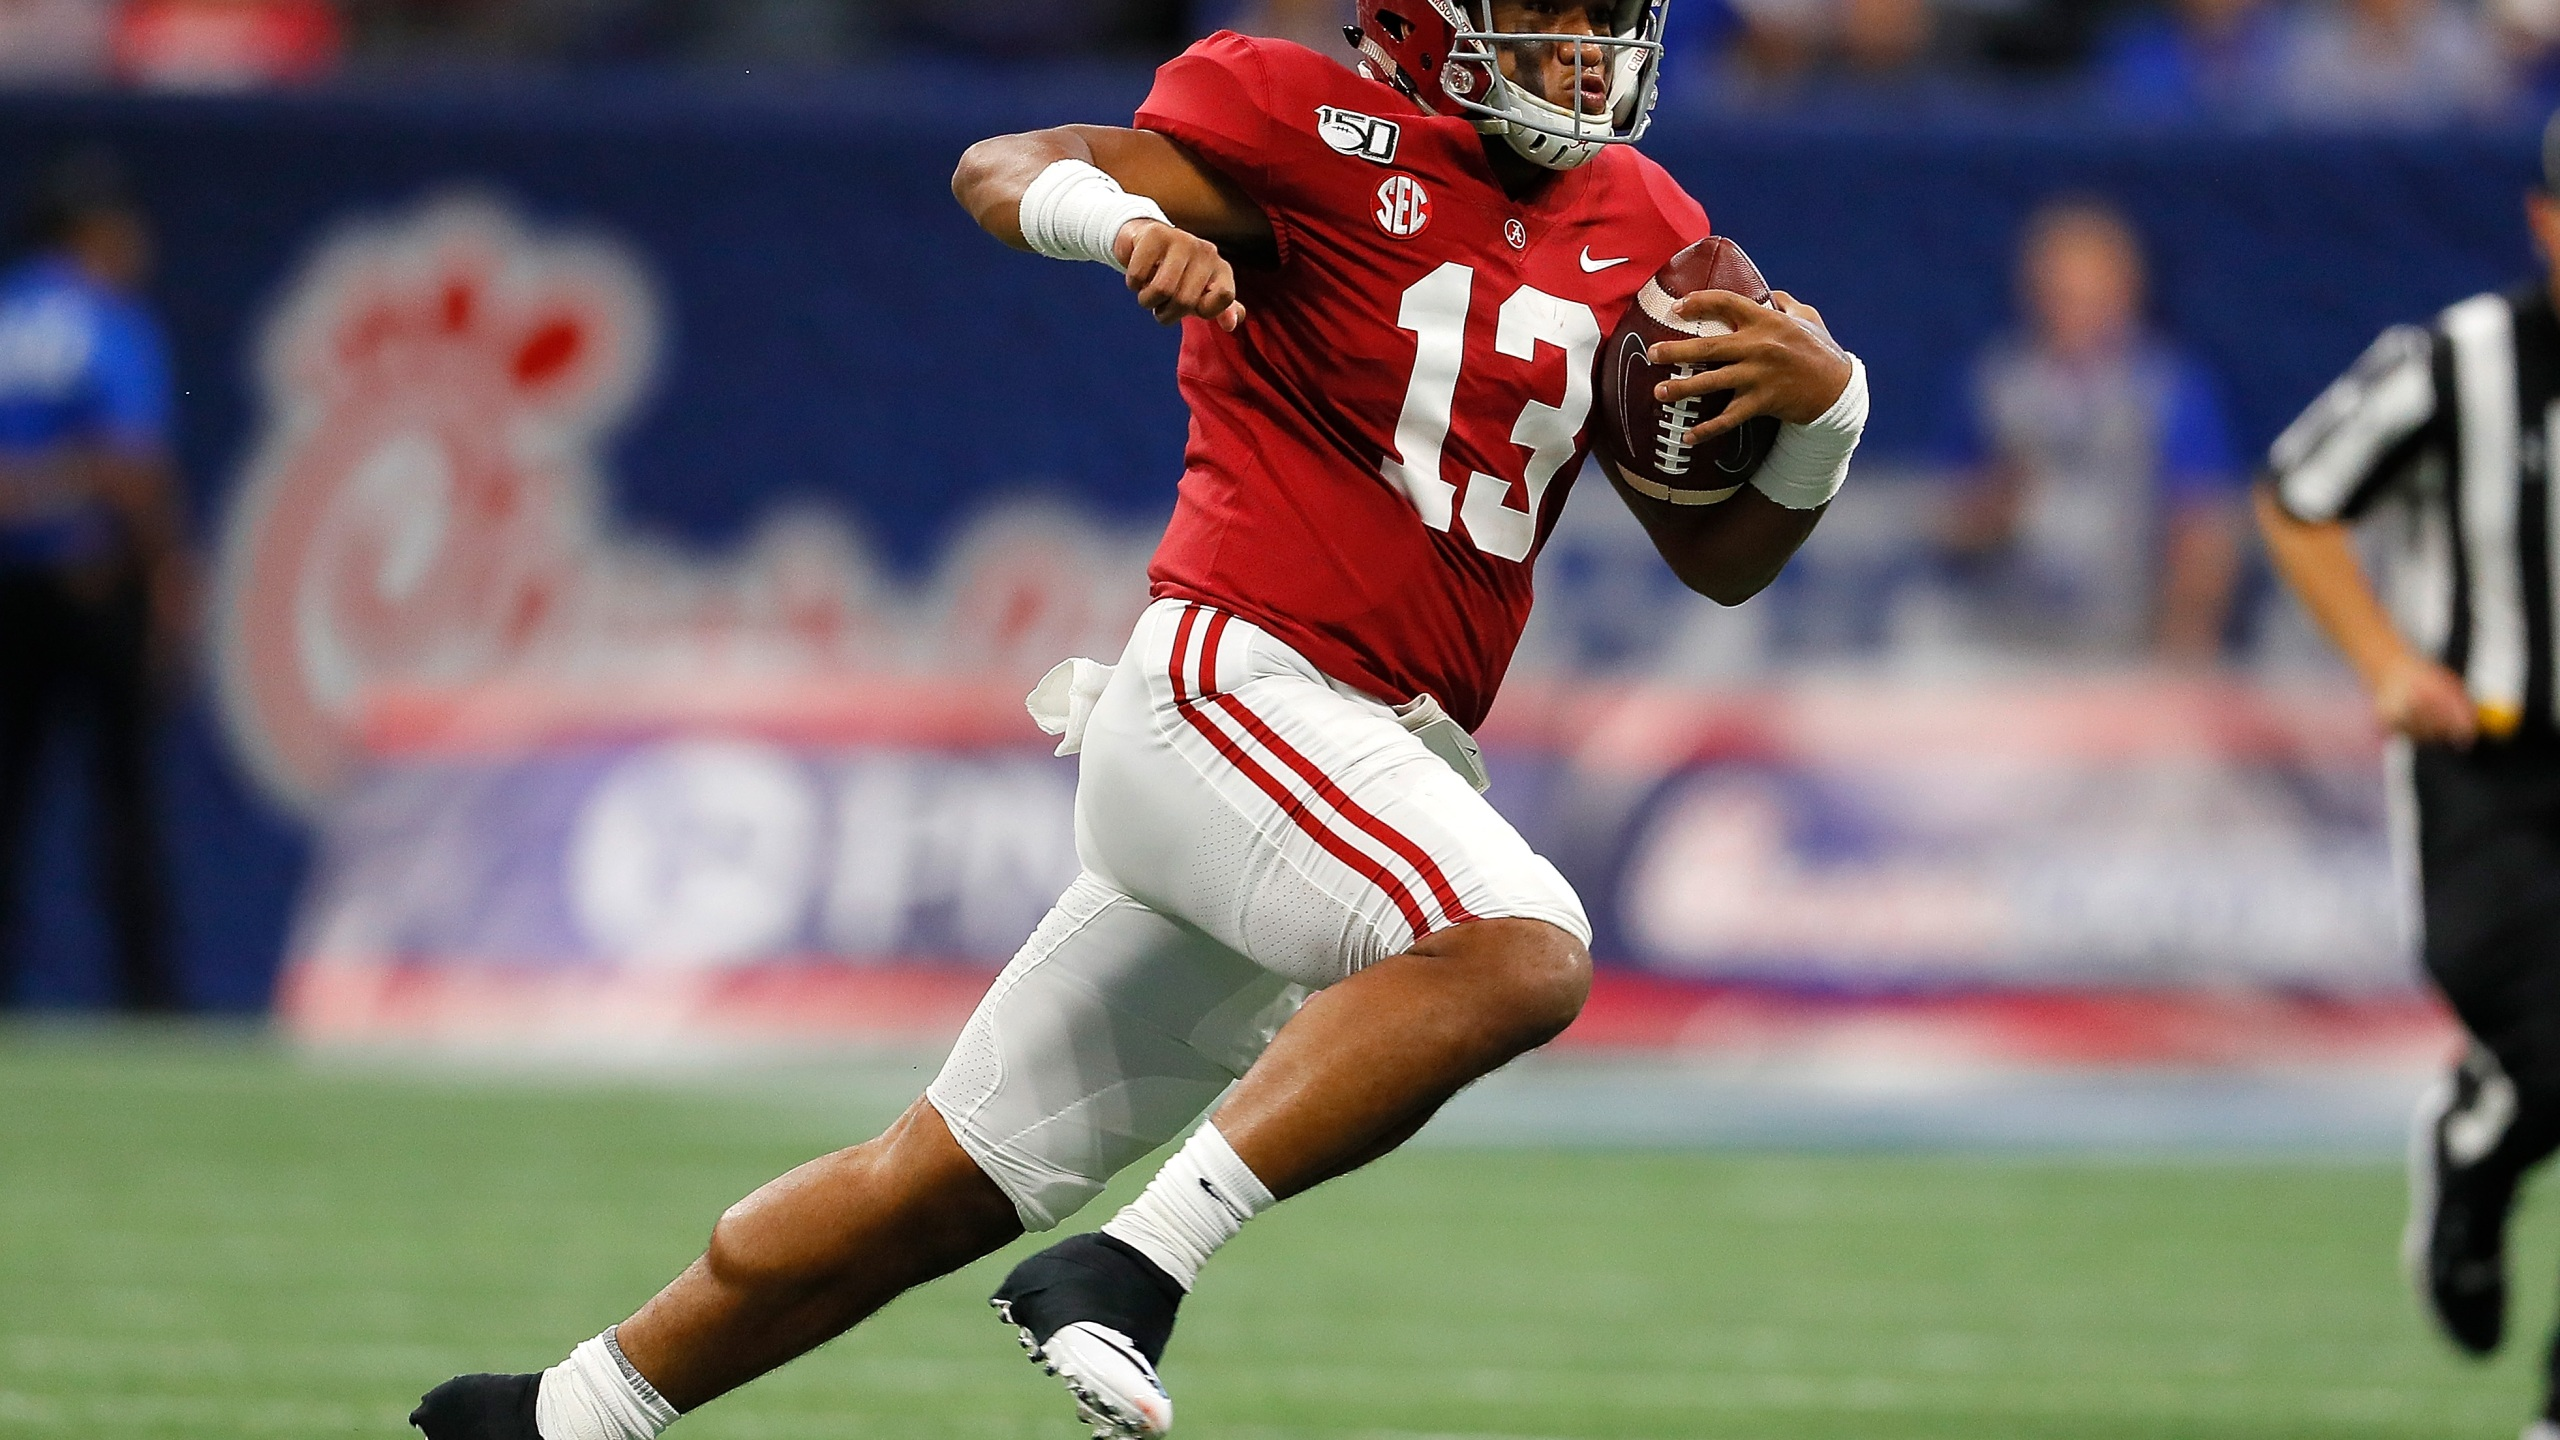 Saban says Tagovailoa 'works out like crazy', says he might